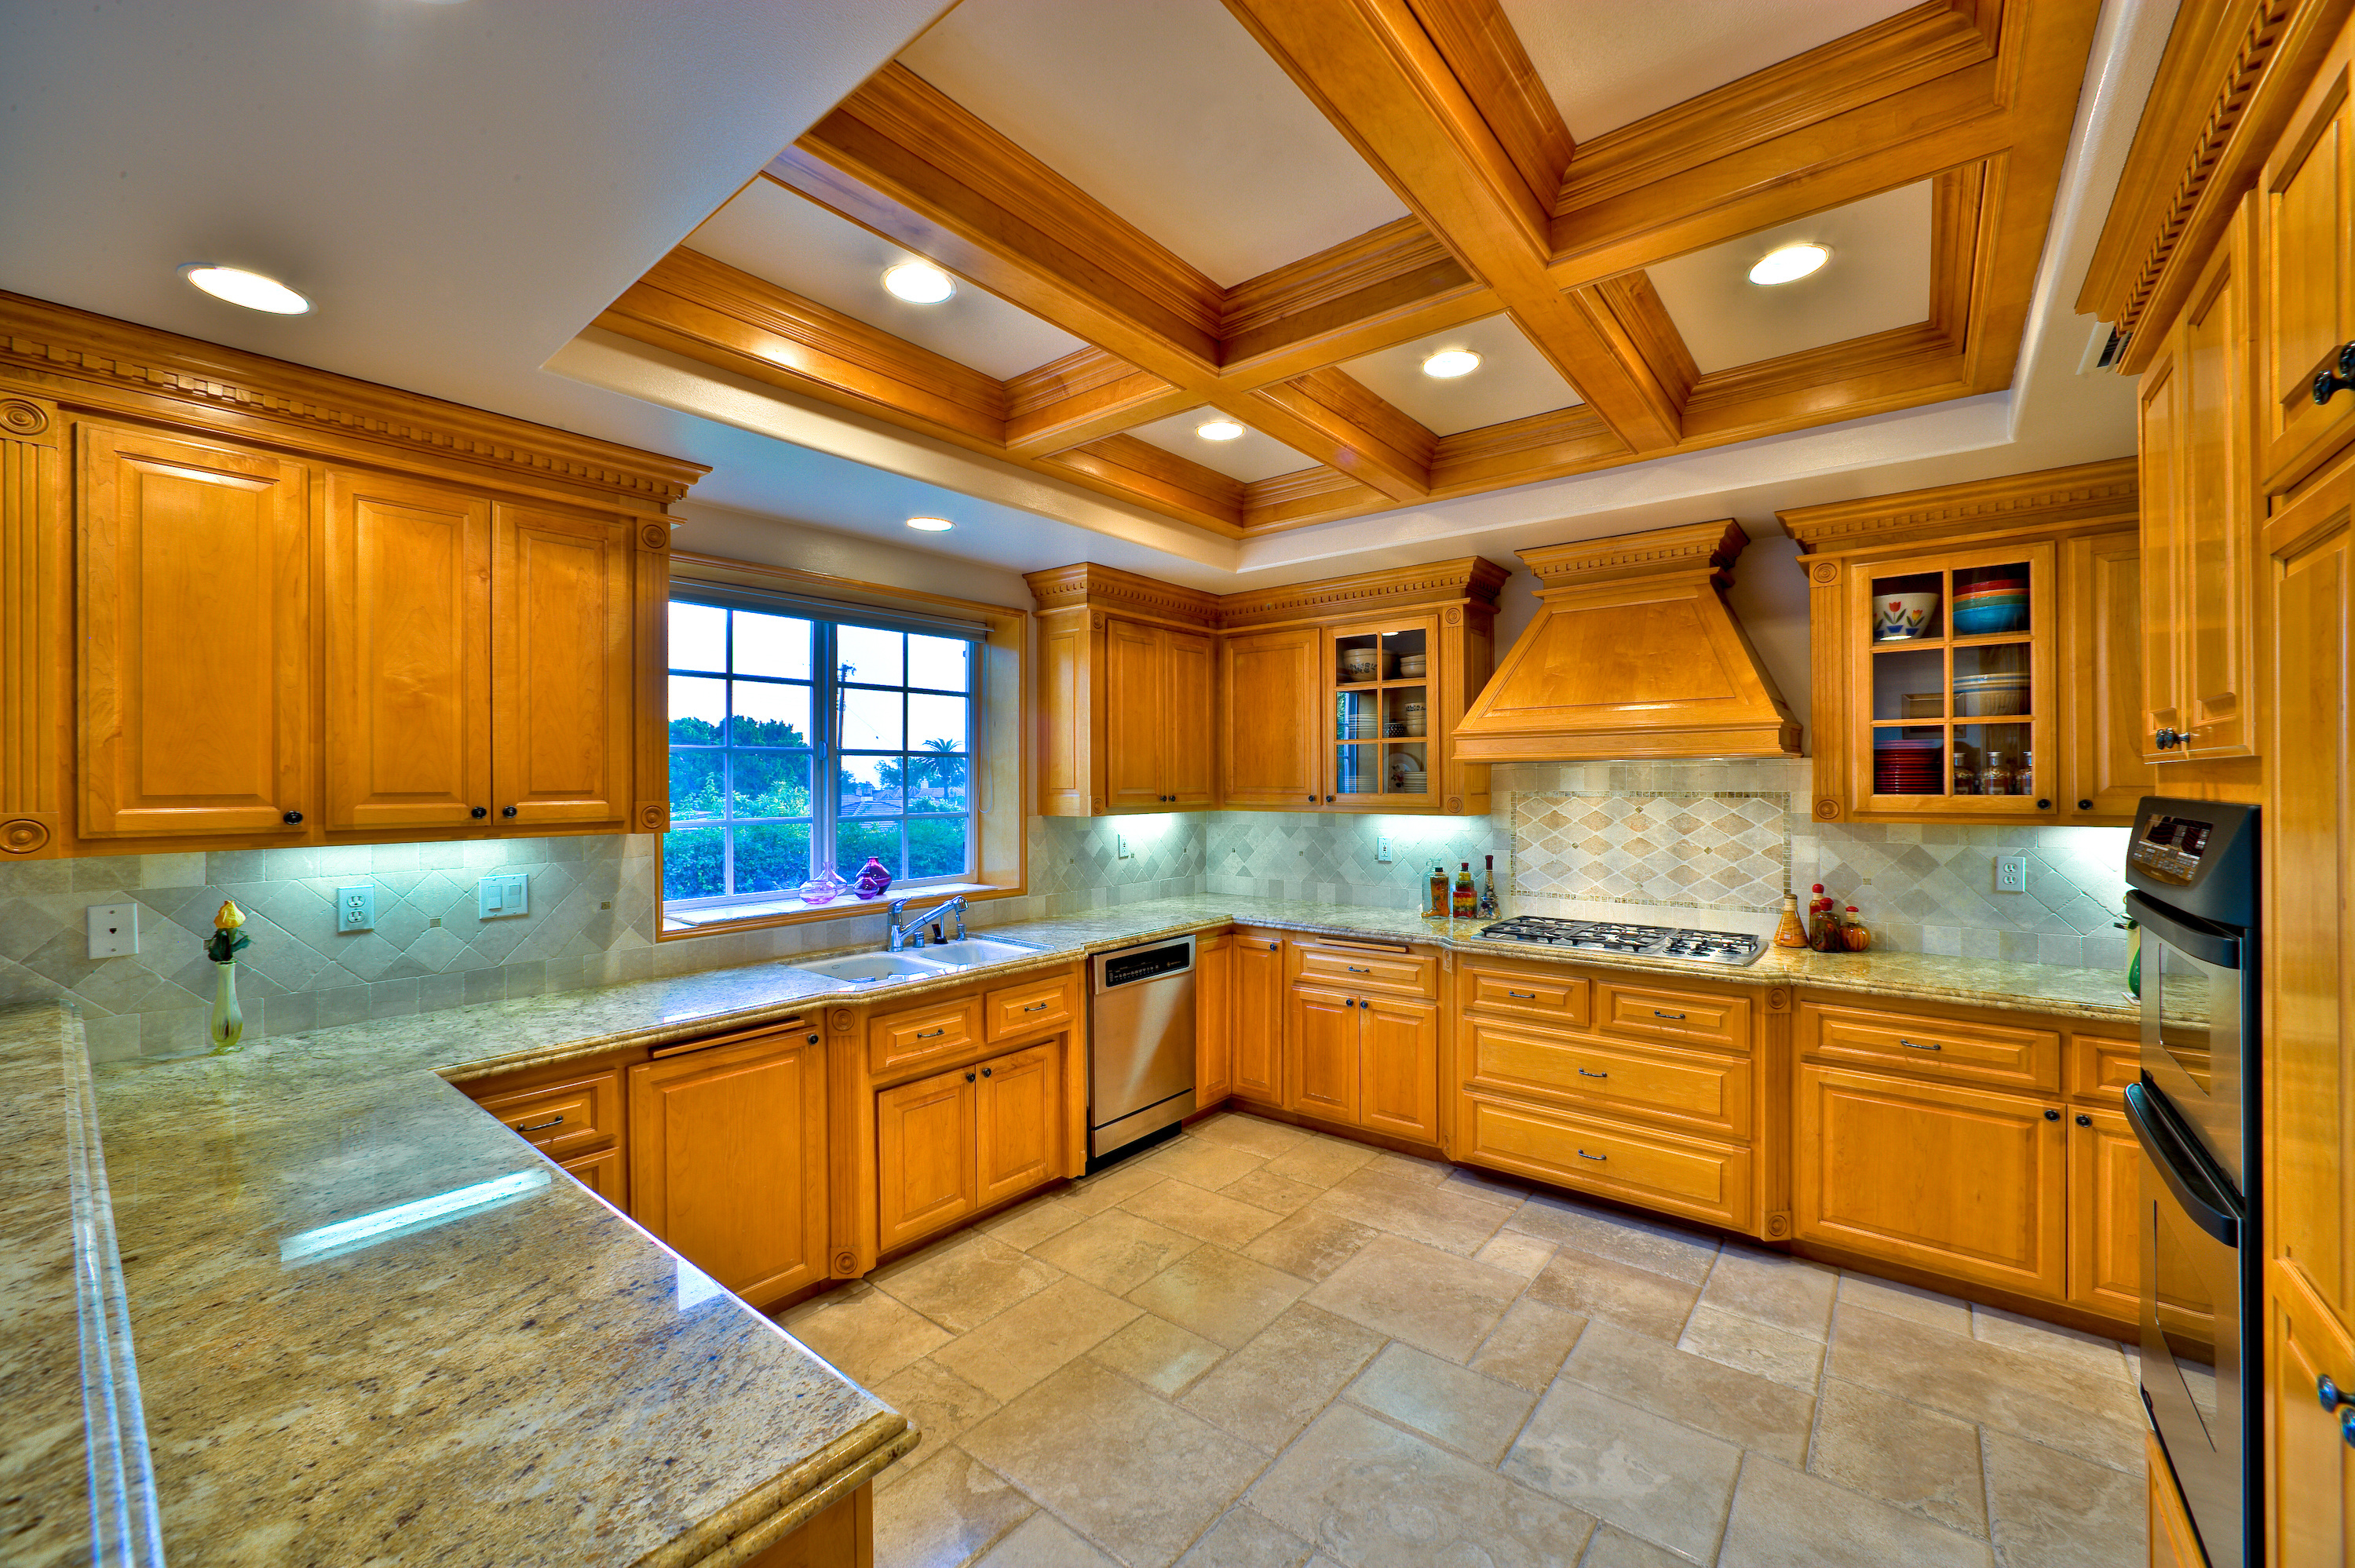 4 reasons why custom kitchen cabinets are better than off for Off the shelf kitchen units